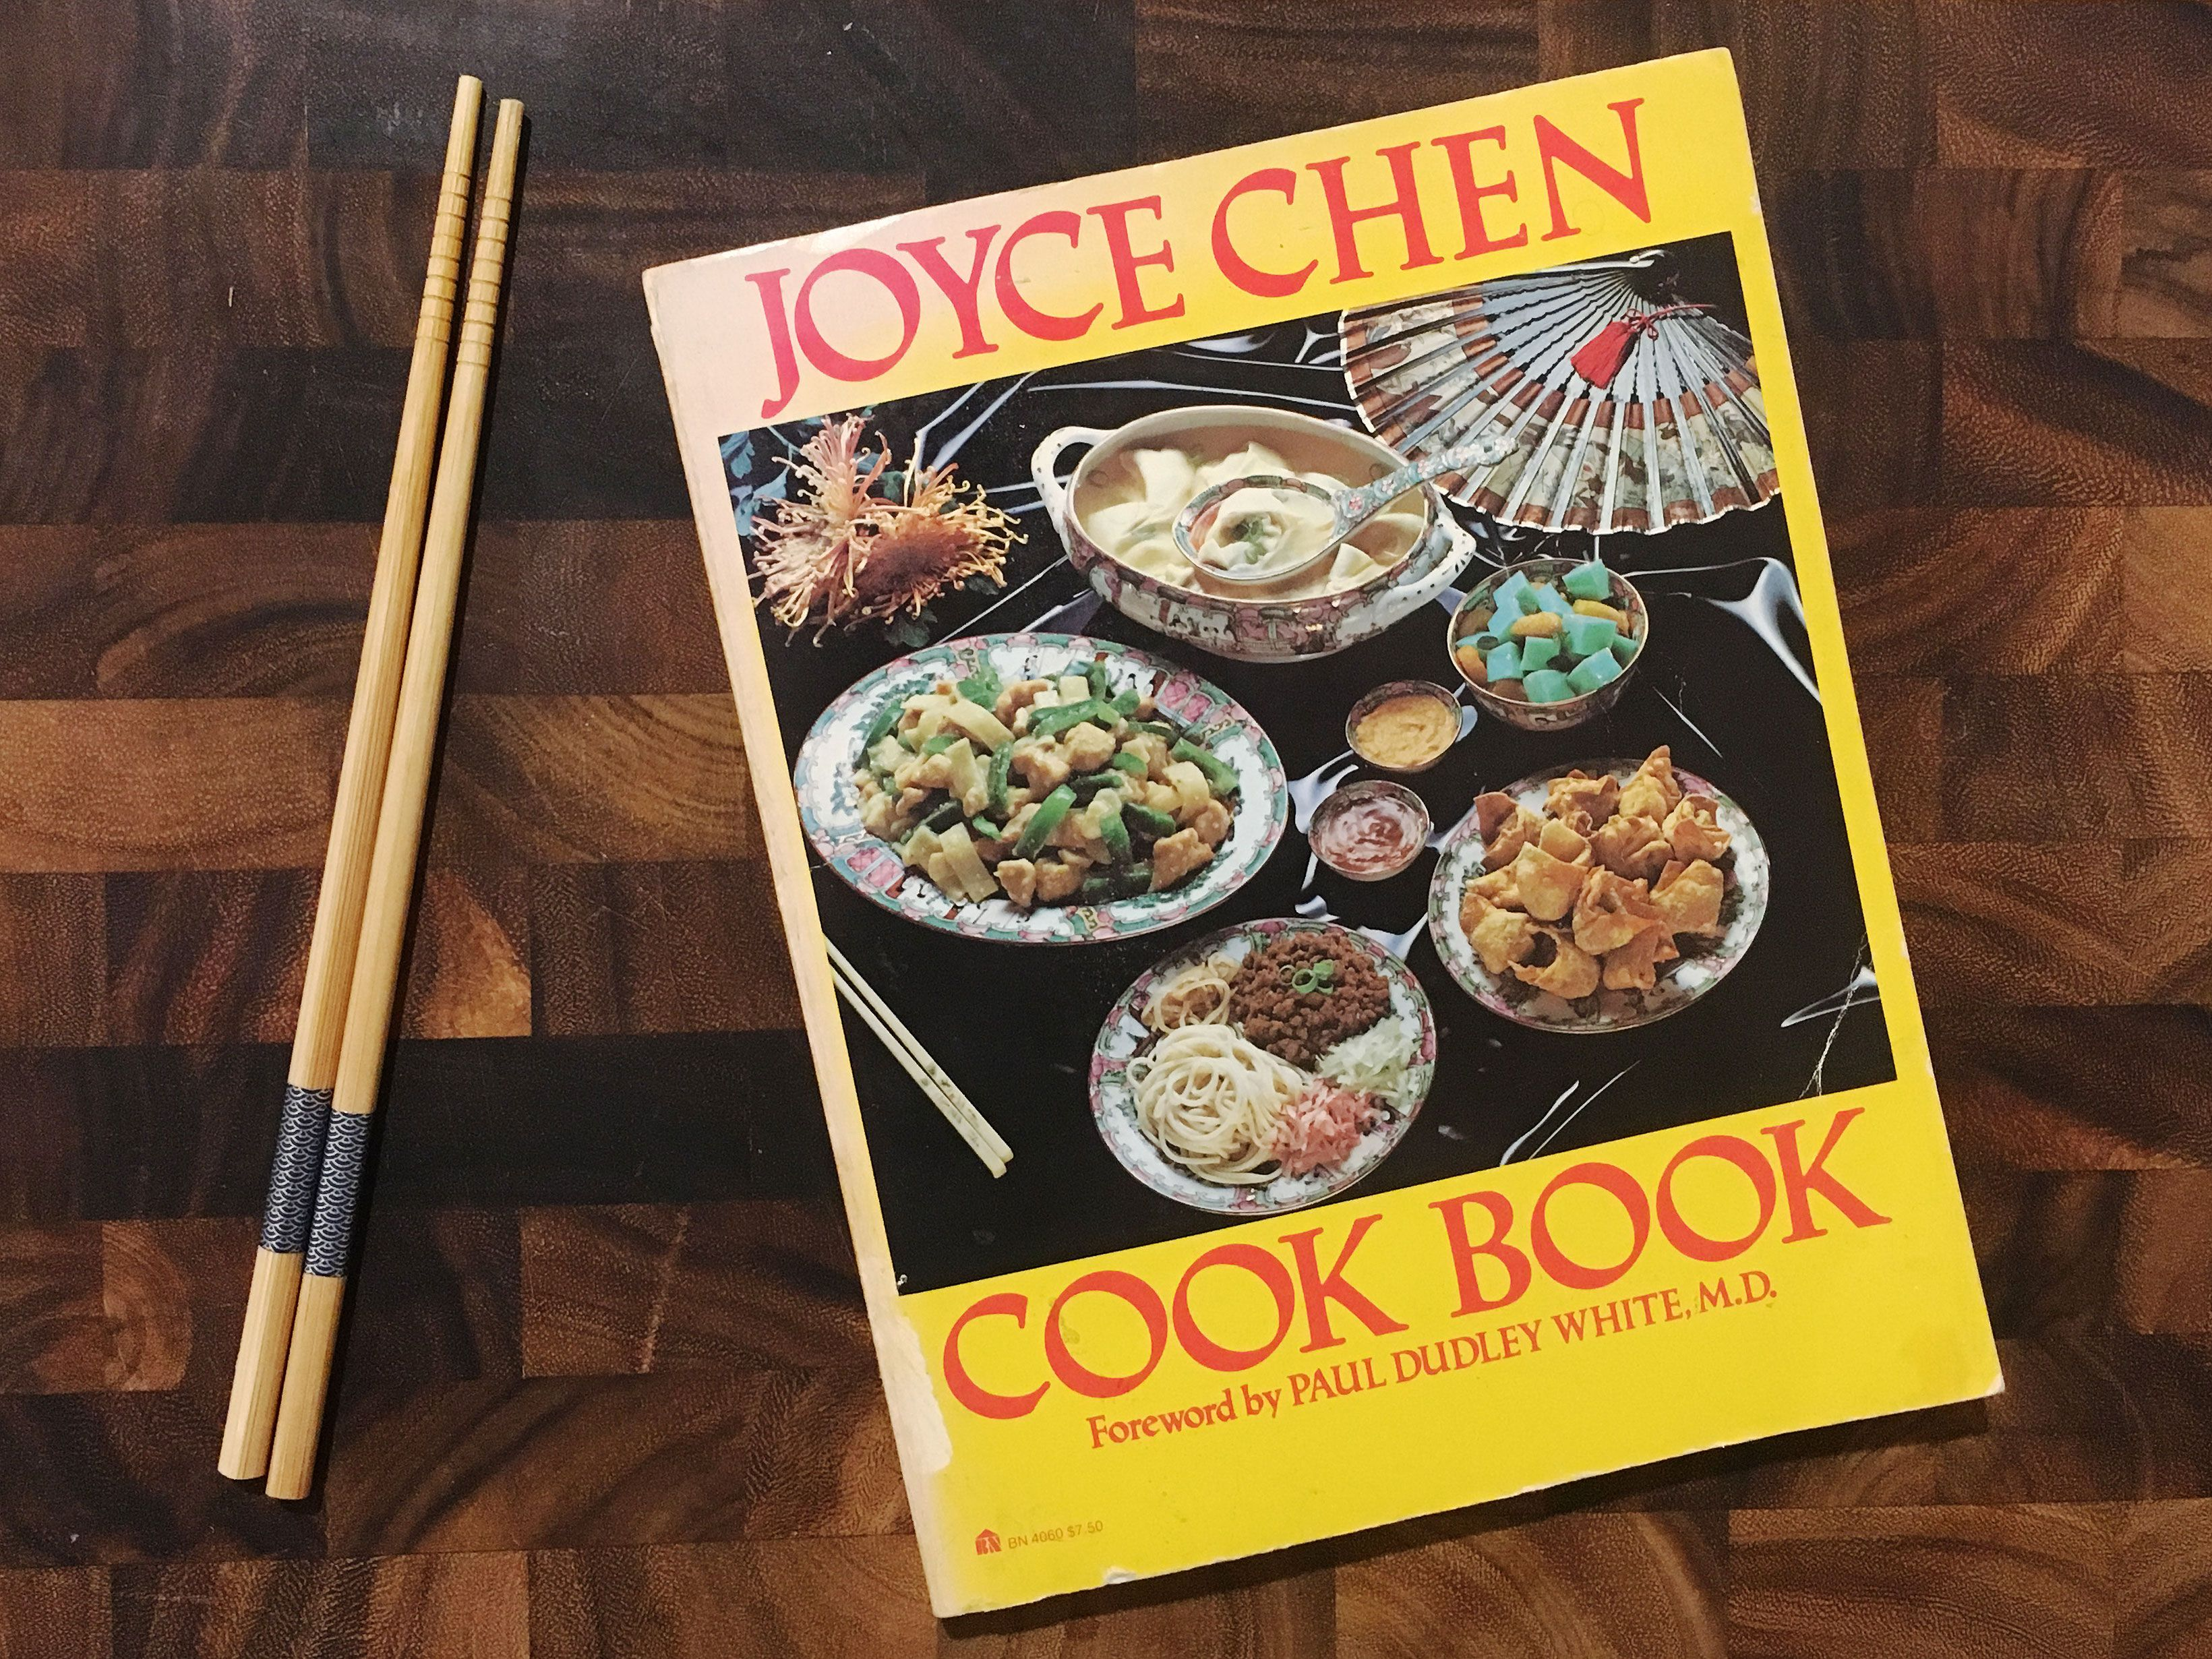 The food labs reading list day 7 the joyce chen cook book chen the food labs reading list day 7 the joyce chen cook book recipes forumfinder Choice Image